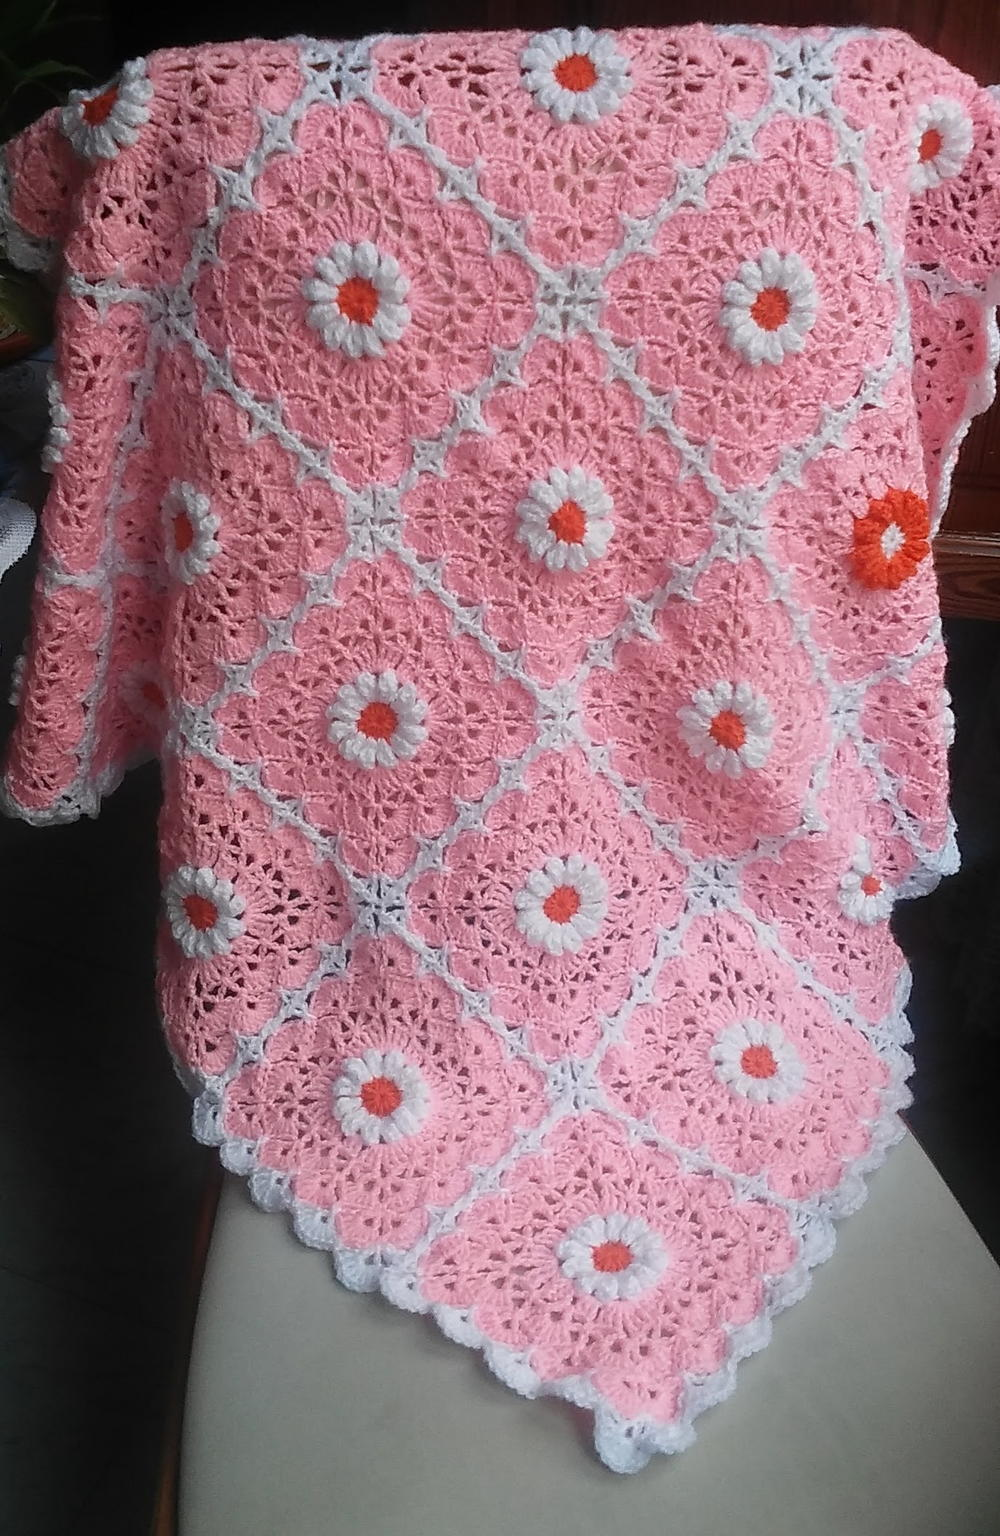 Pink Daisy Crocheted Baby Blanket   FaveCrafts.com